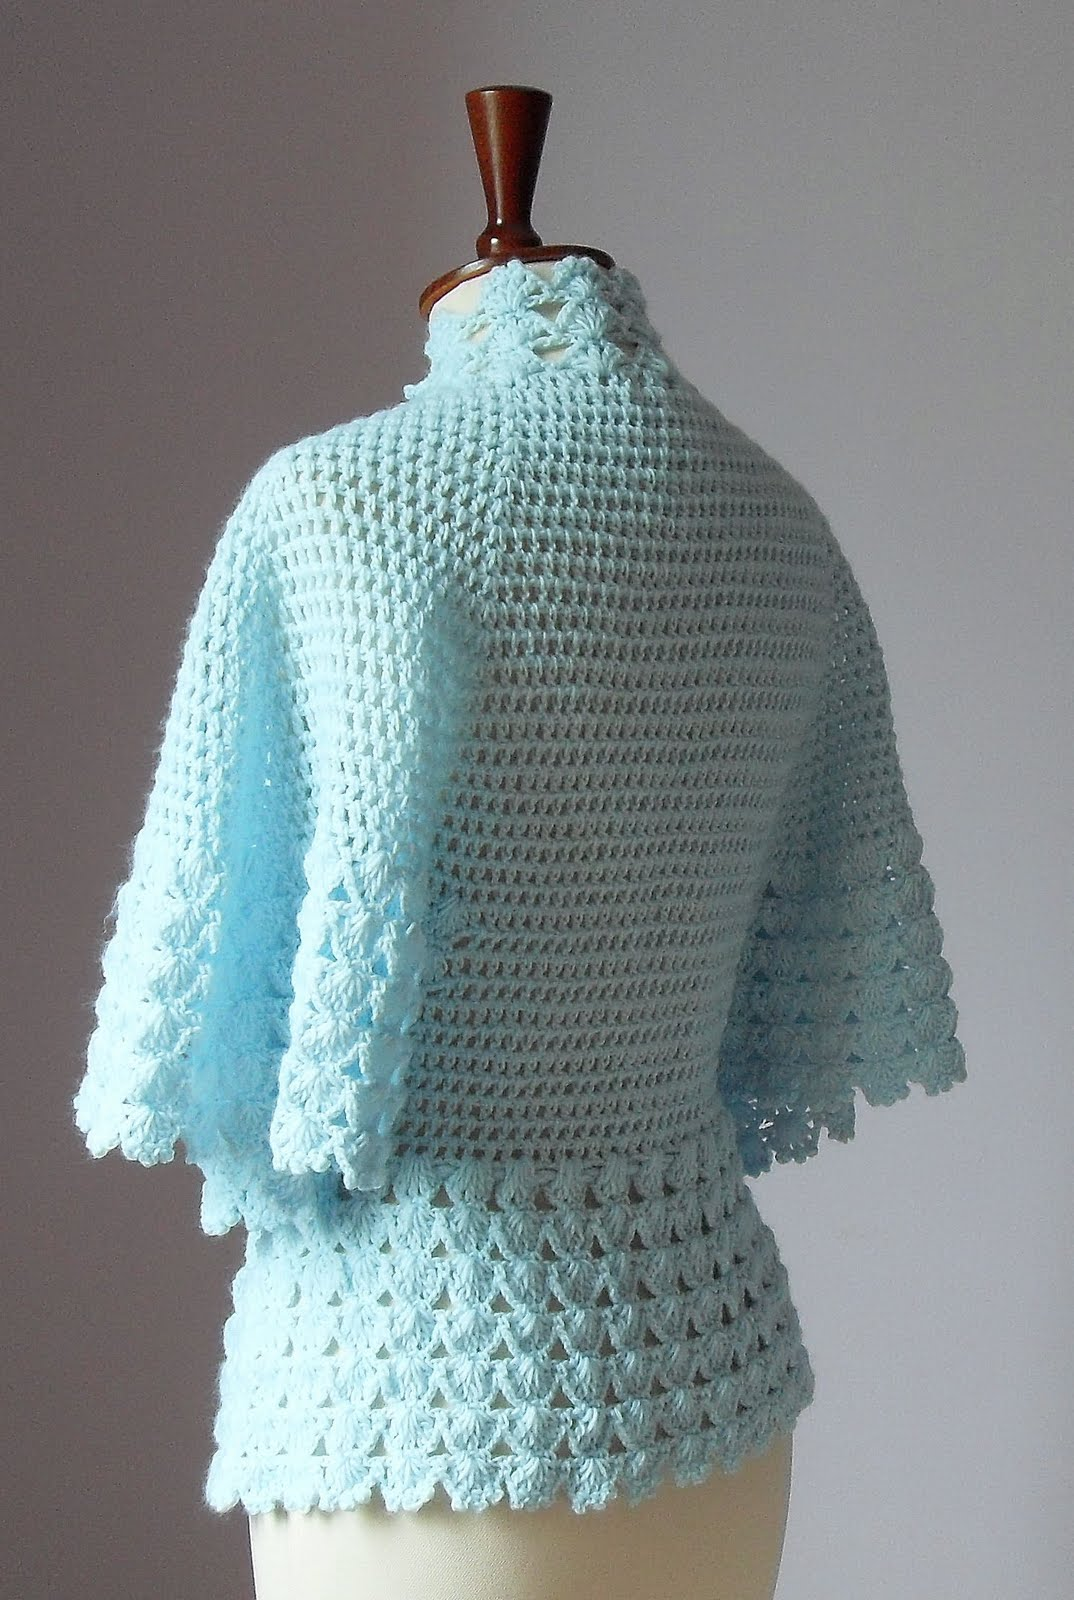 CROCHET BED JACKET PATTERNS - Crochet ? Learn How to Crochet